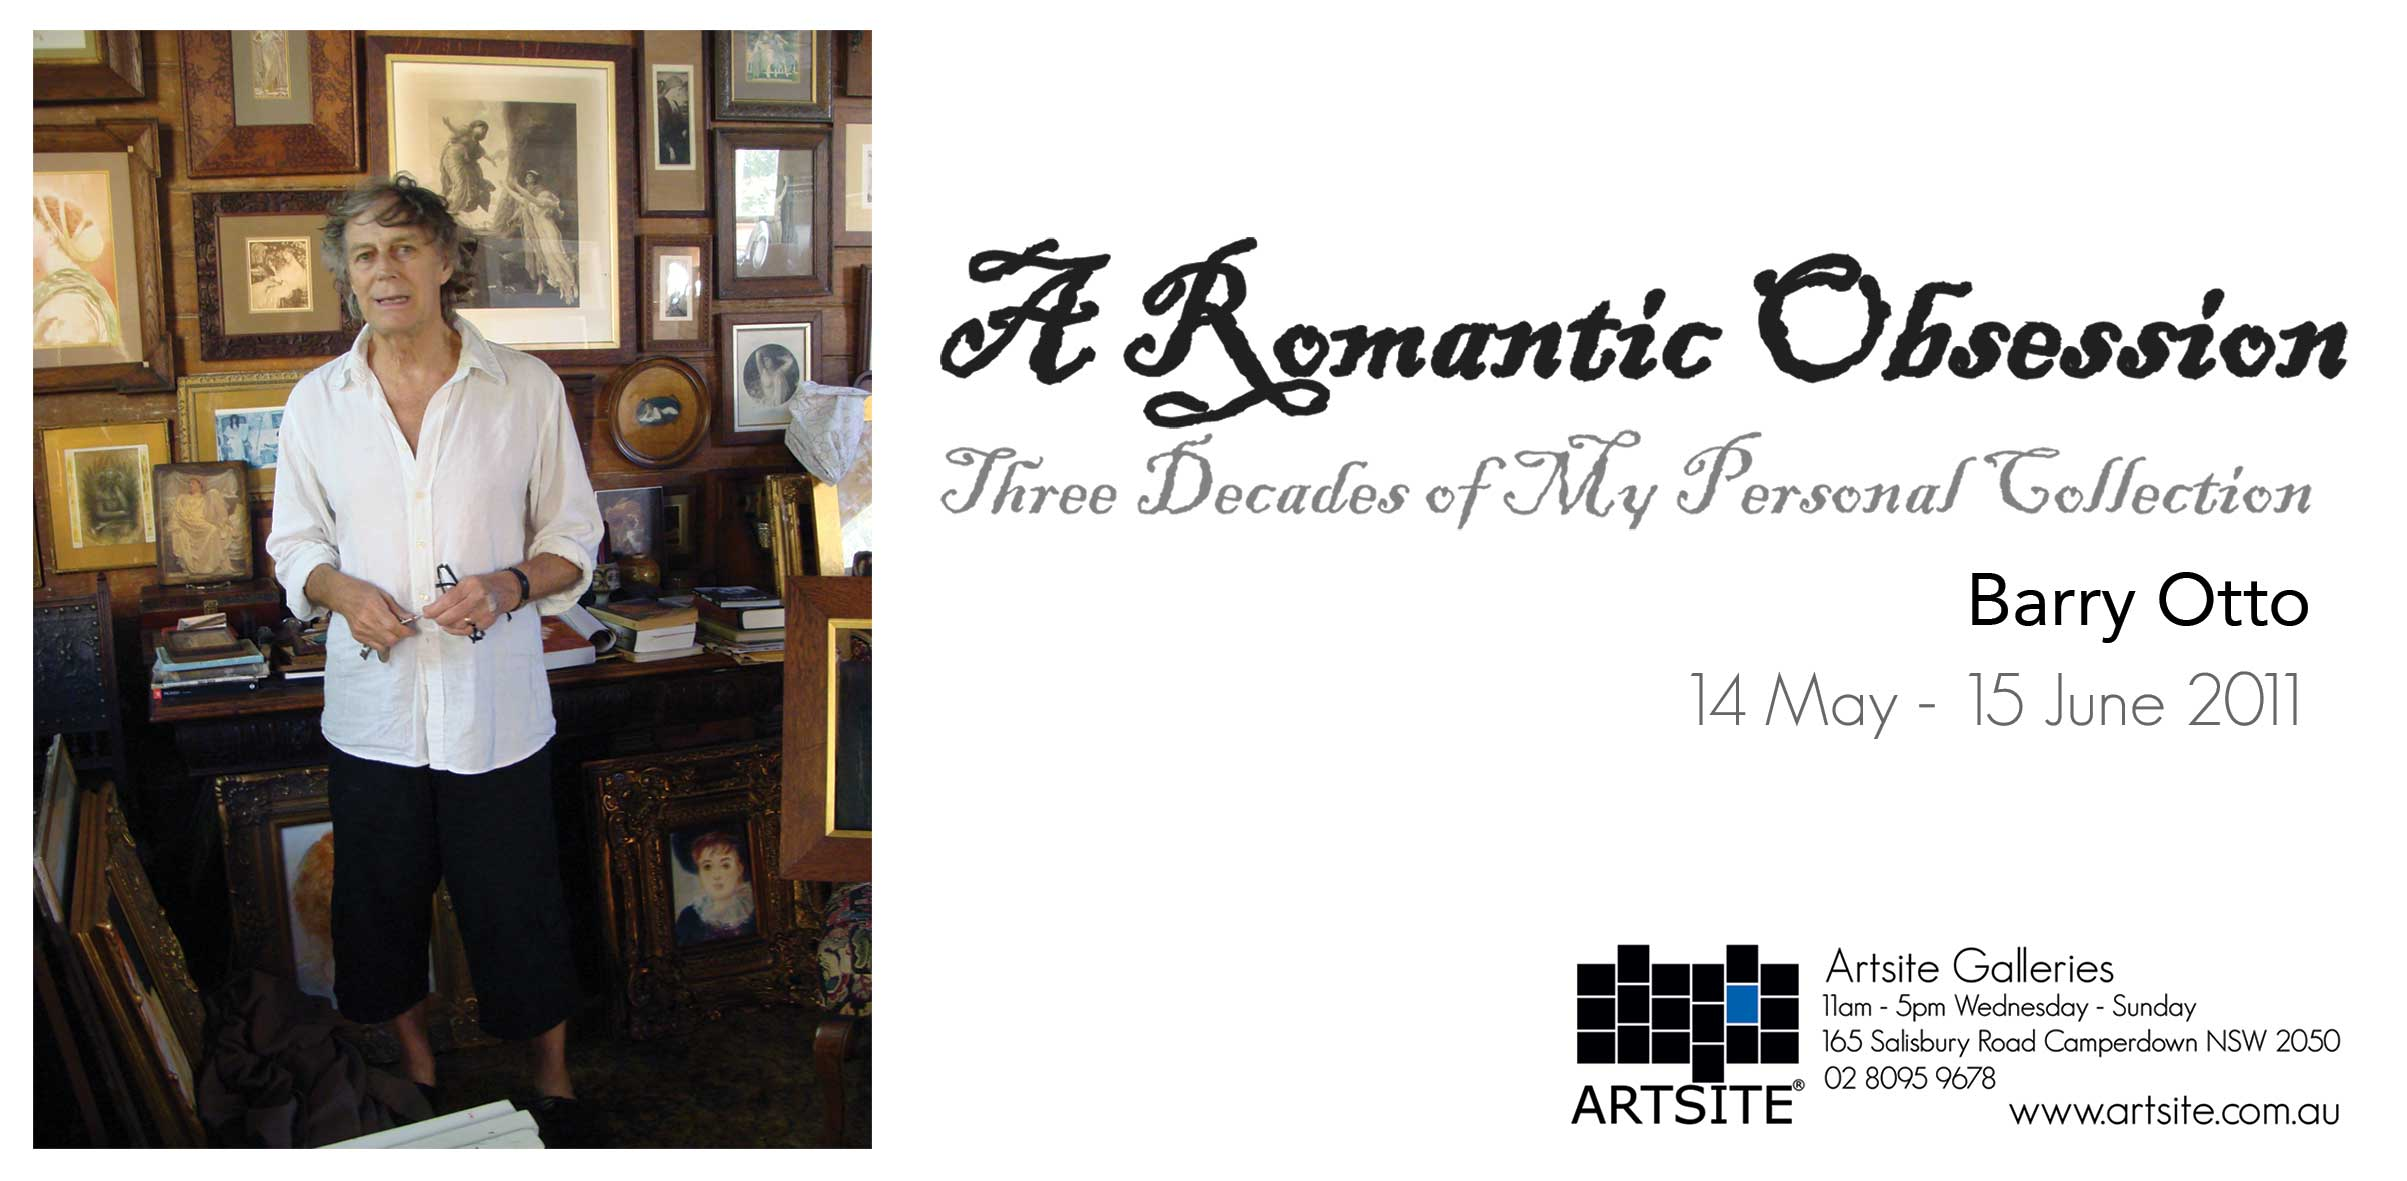 Barry Otto - A Romantic Obsession, Artsite Gallery 14 May - 05 June 2011